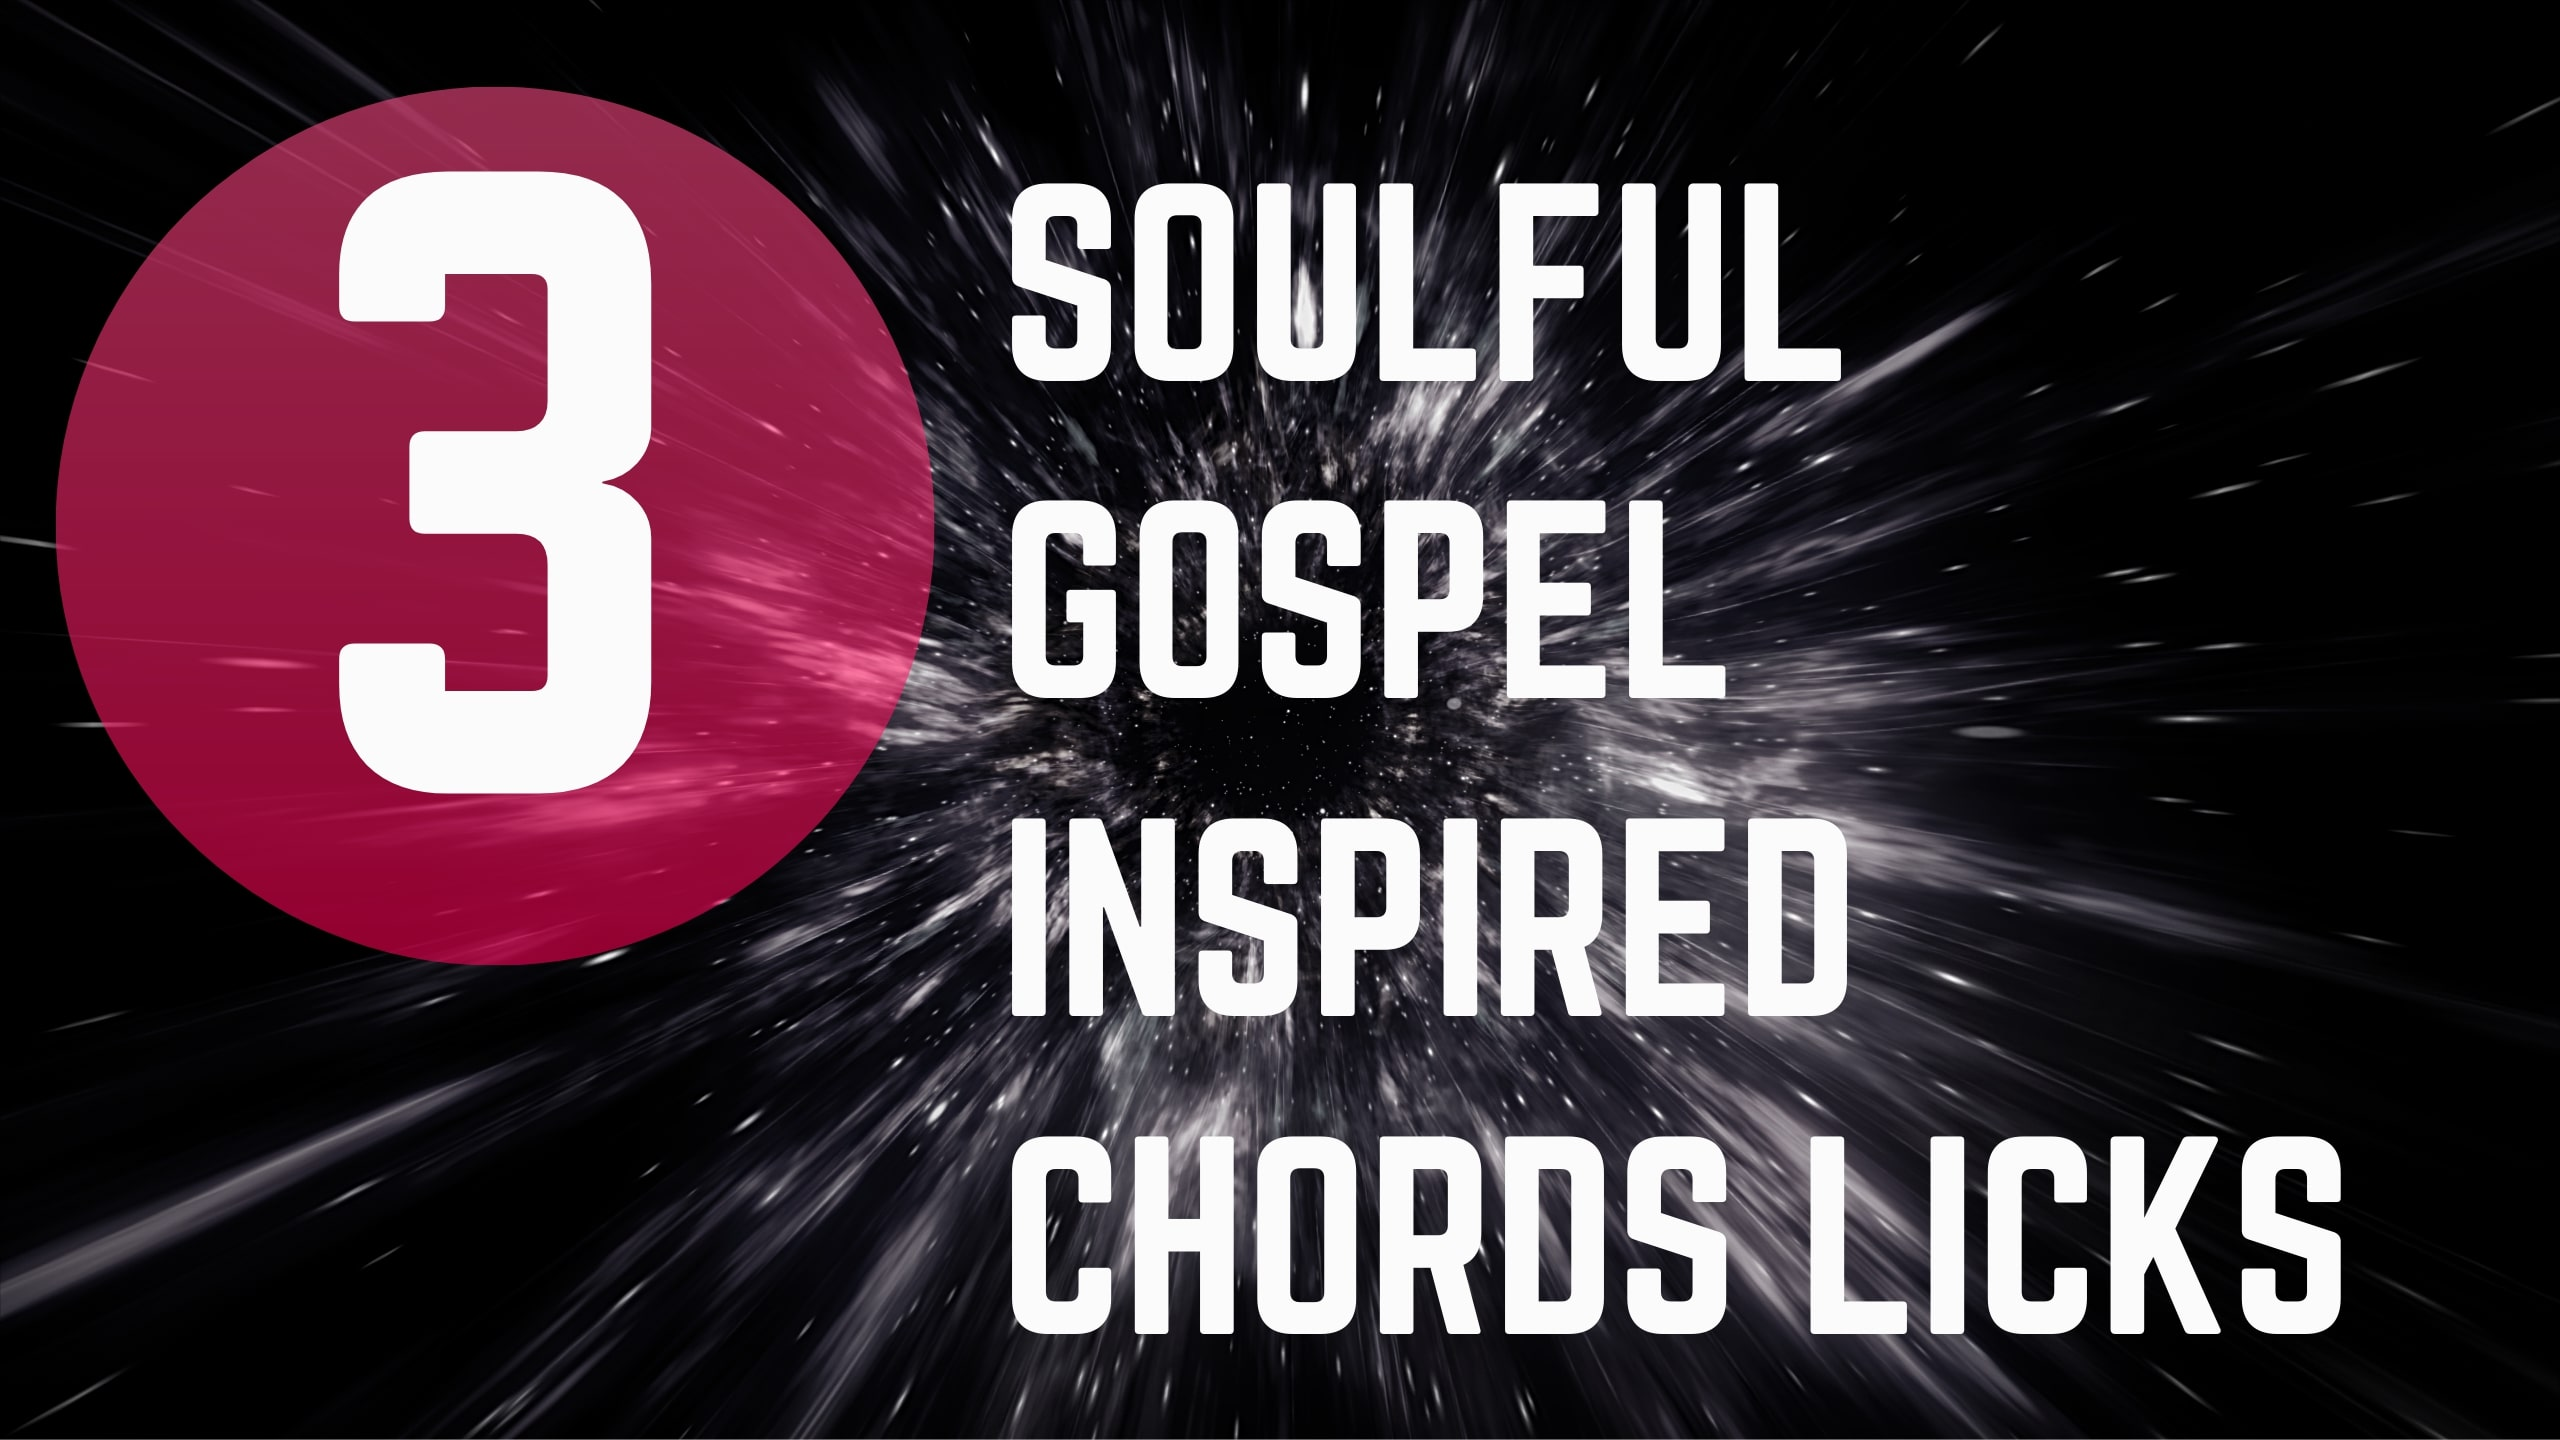 3 soulful gospel inspired chords licks